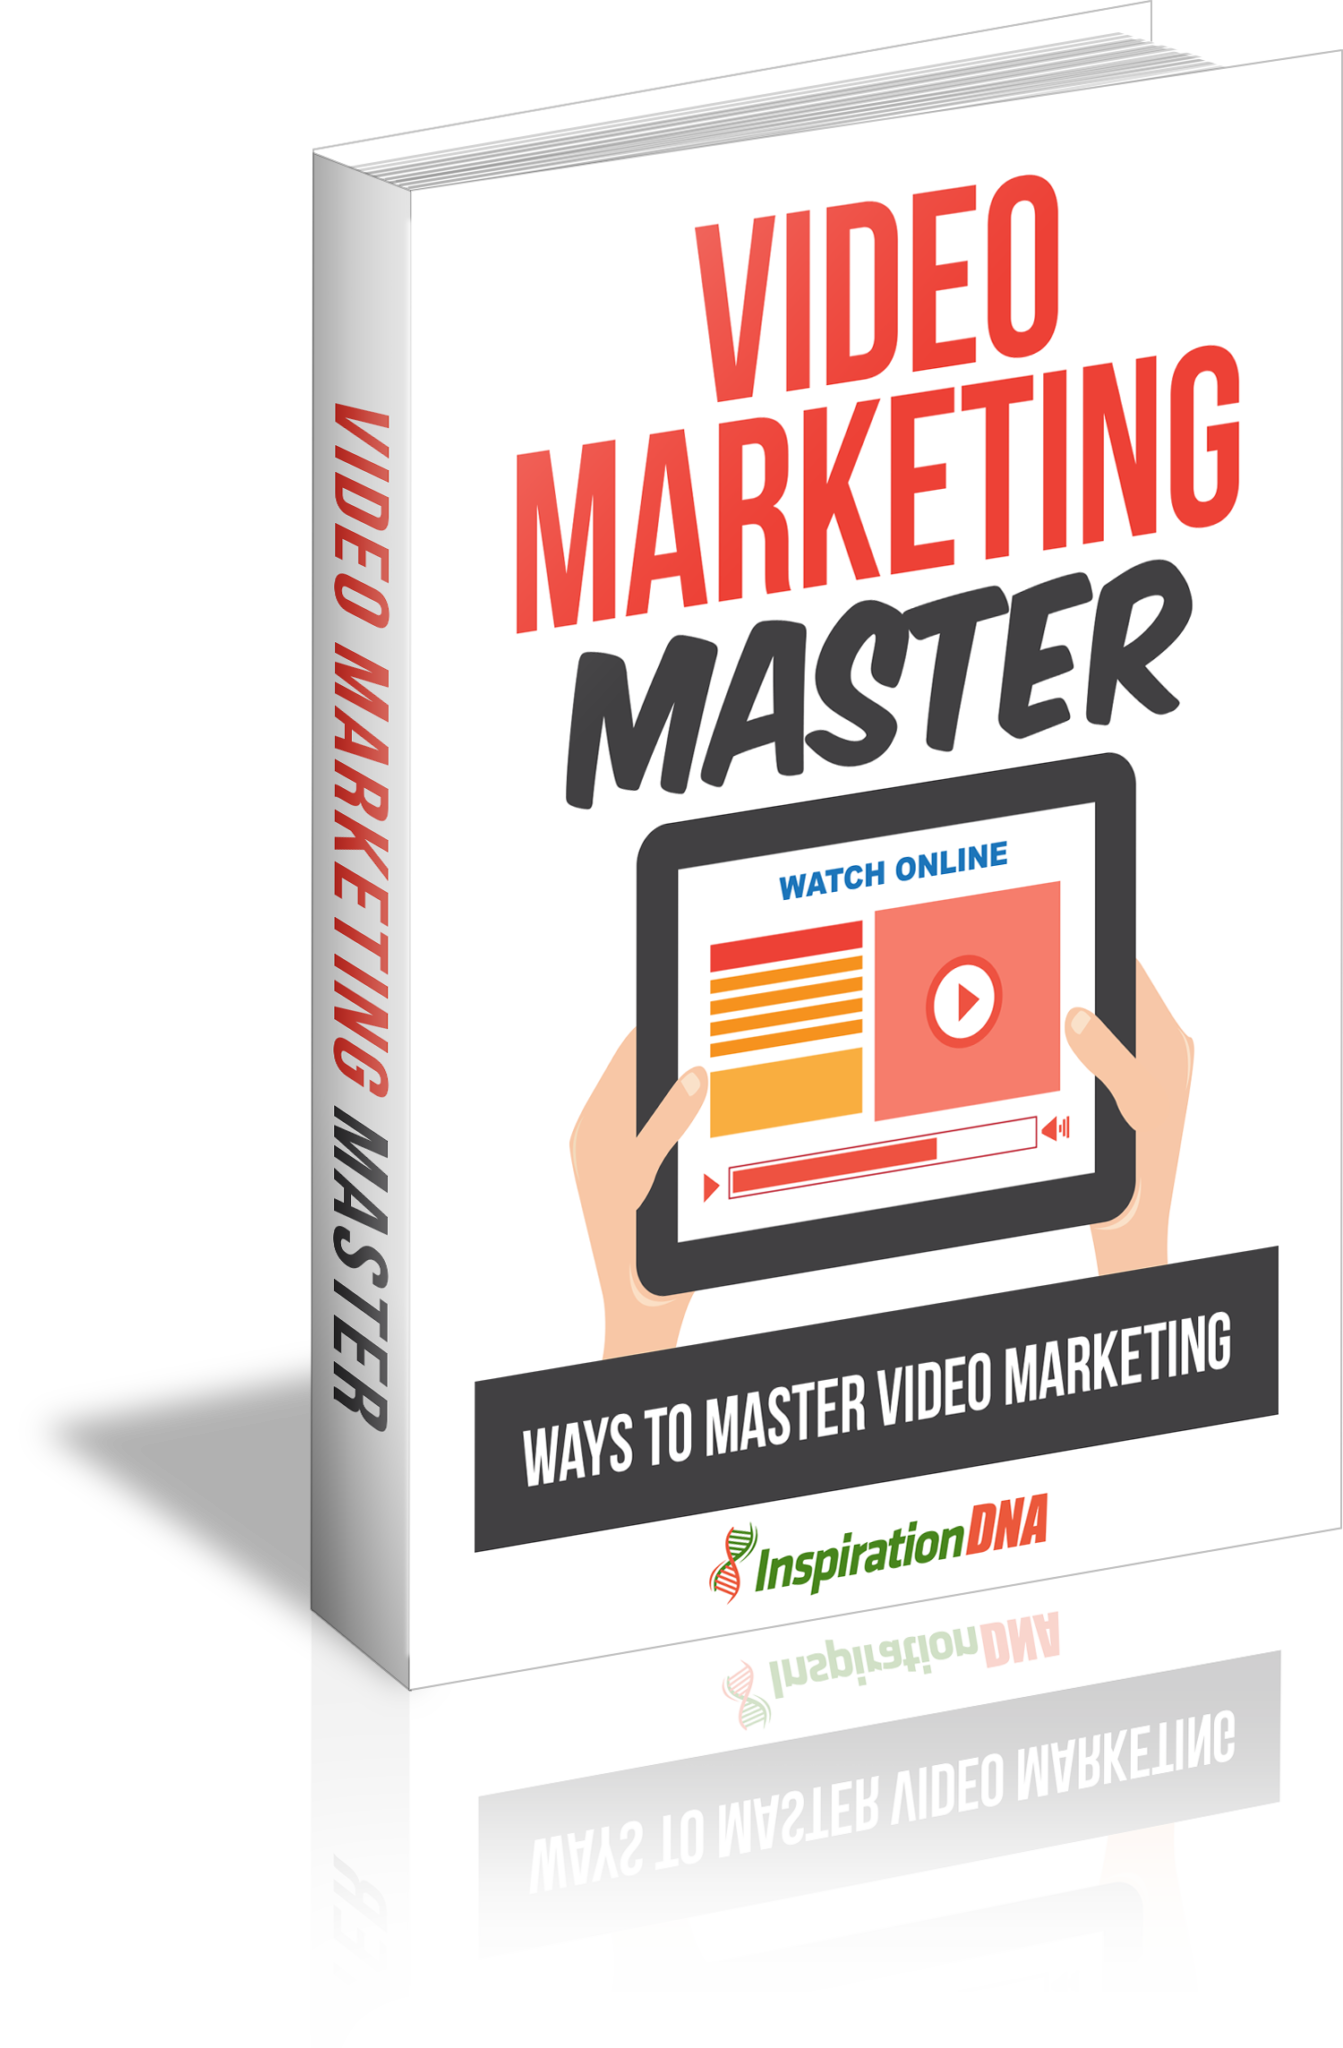 VideoMarketingMaster mrr Video Marketing Master